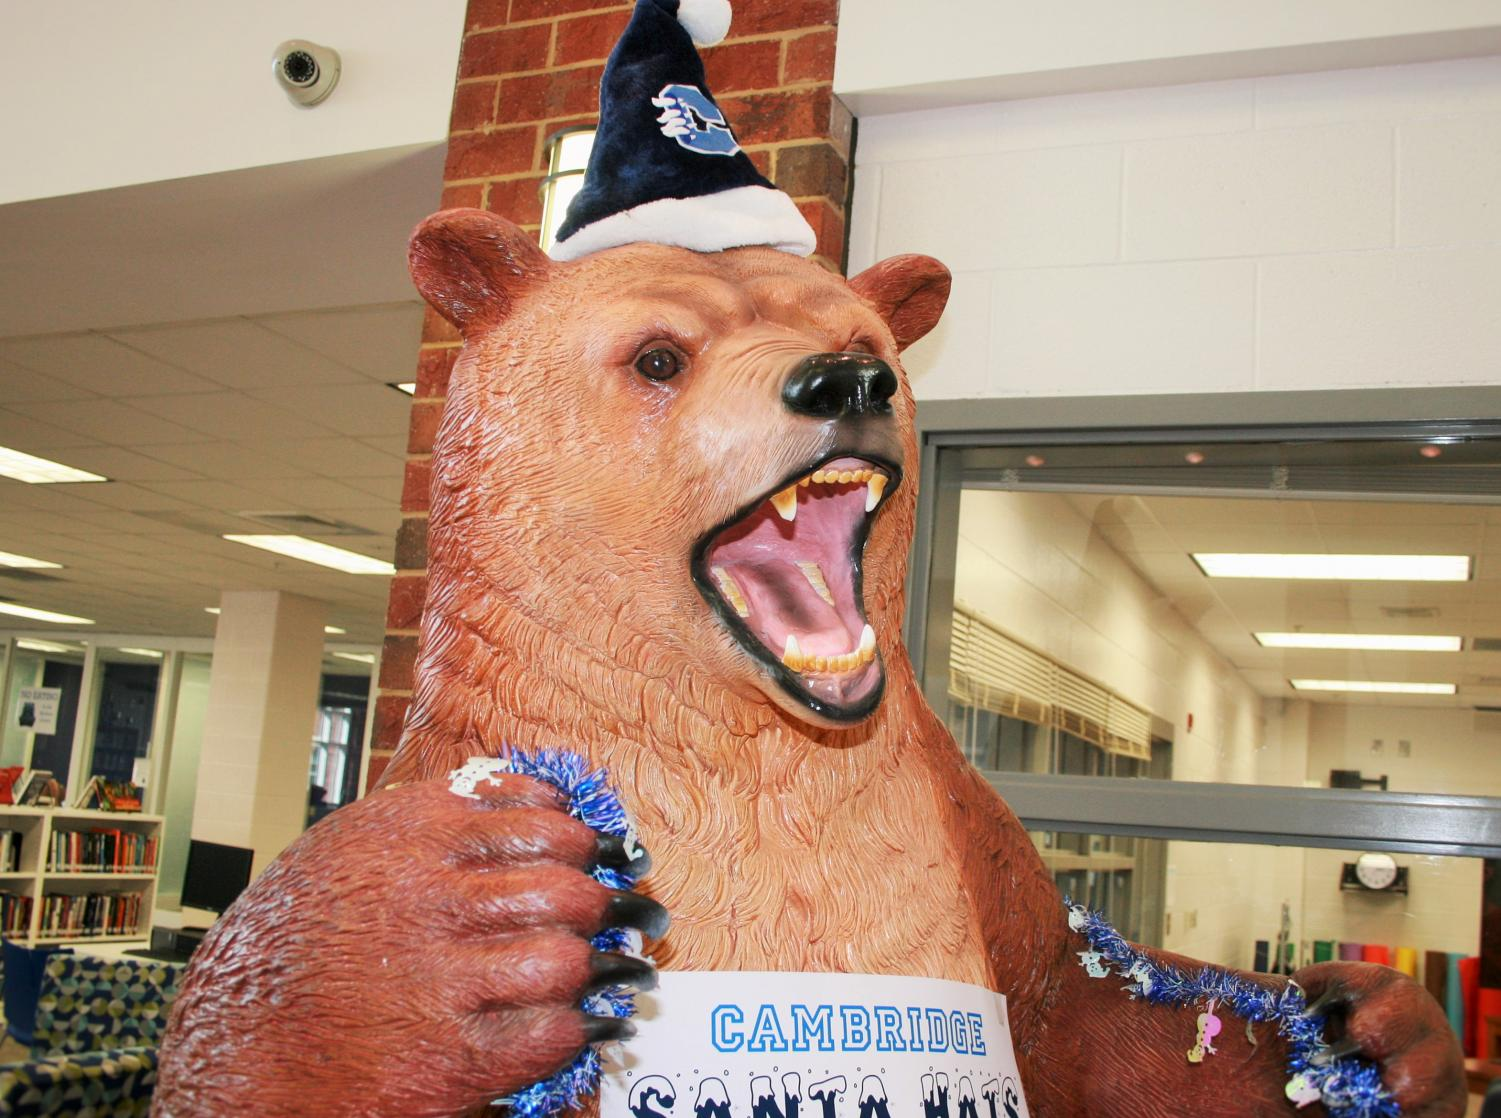 The Cambridge bear is all dolled up for the holidays.